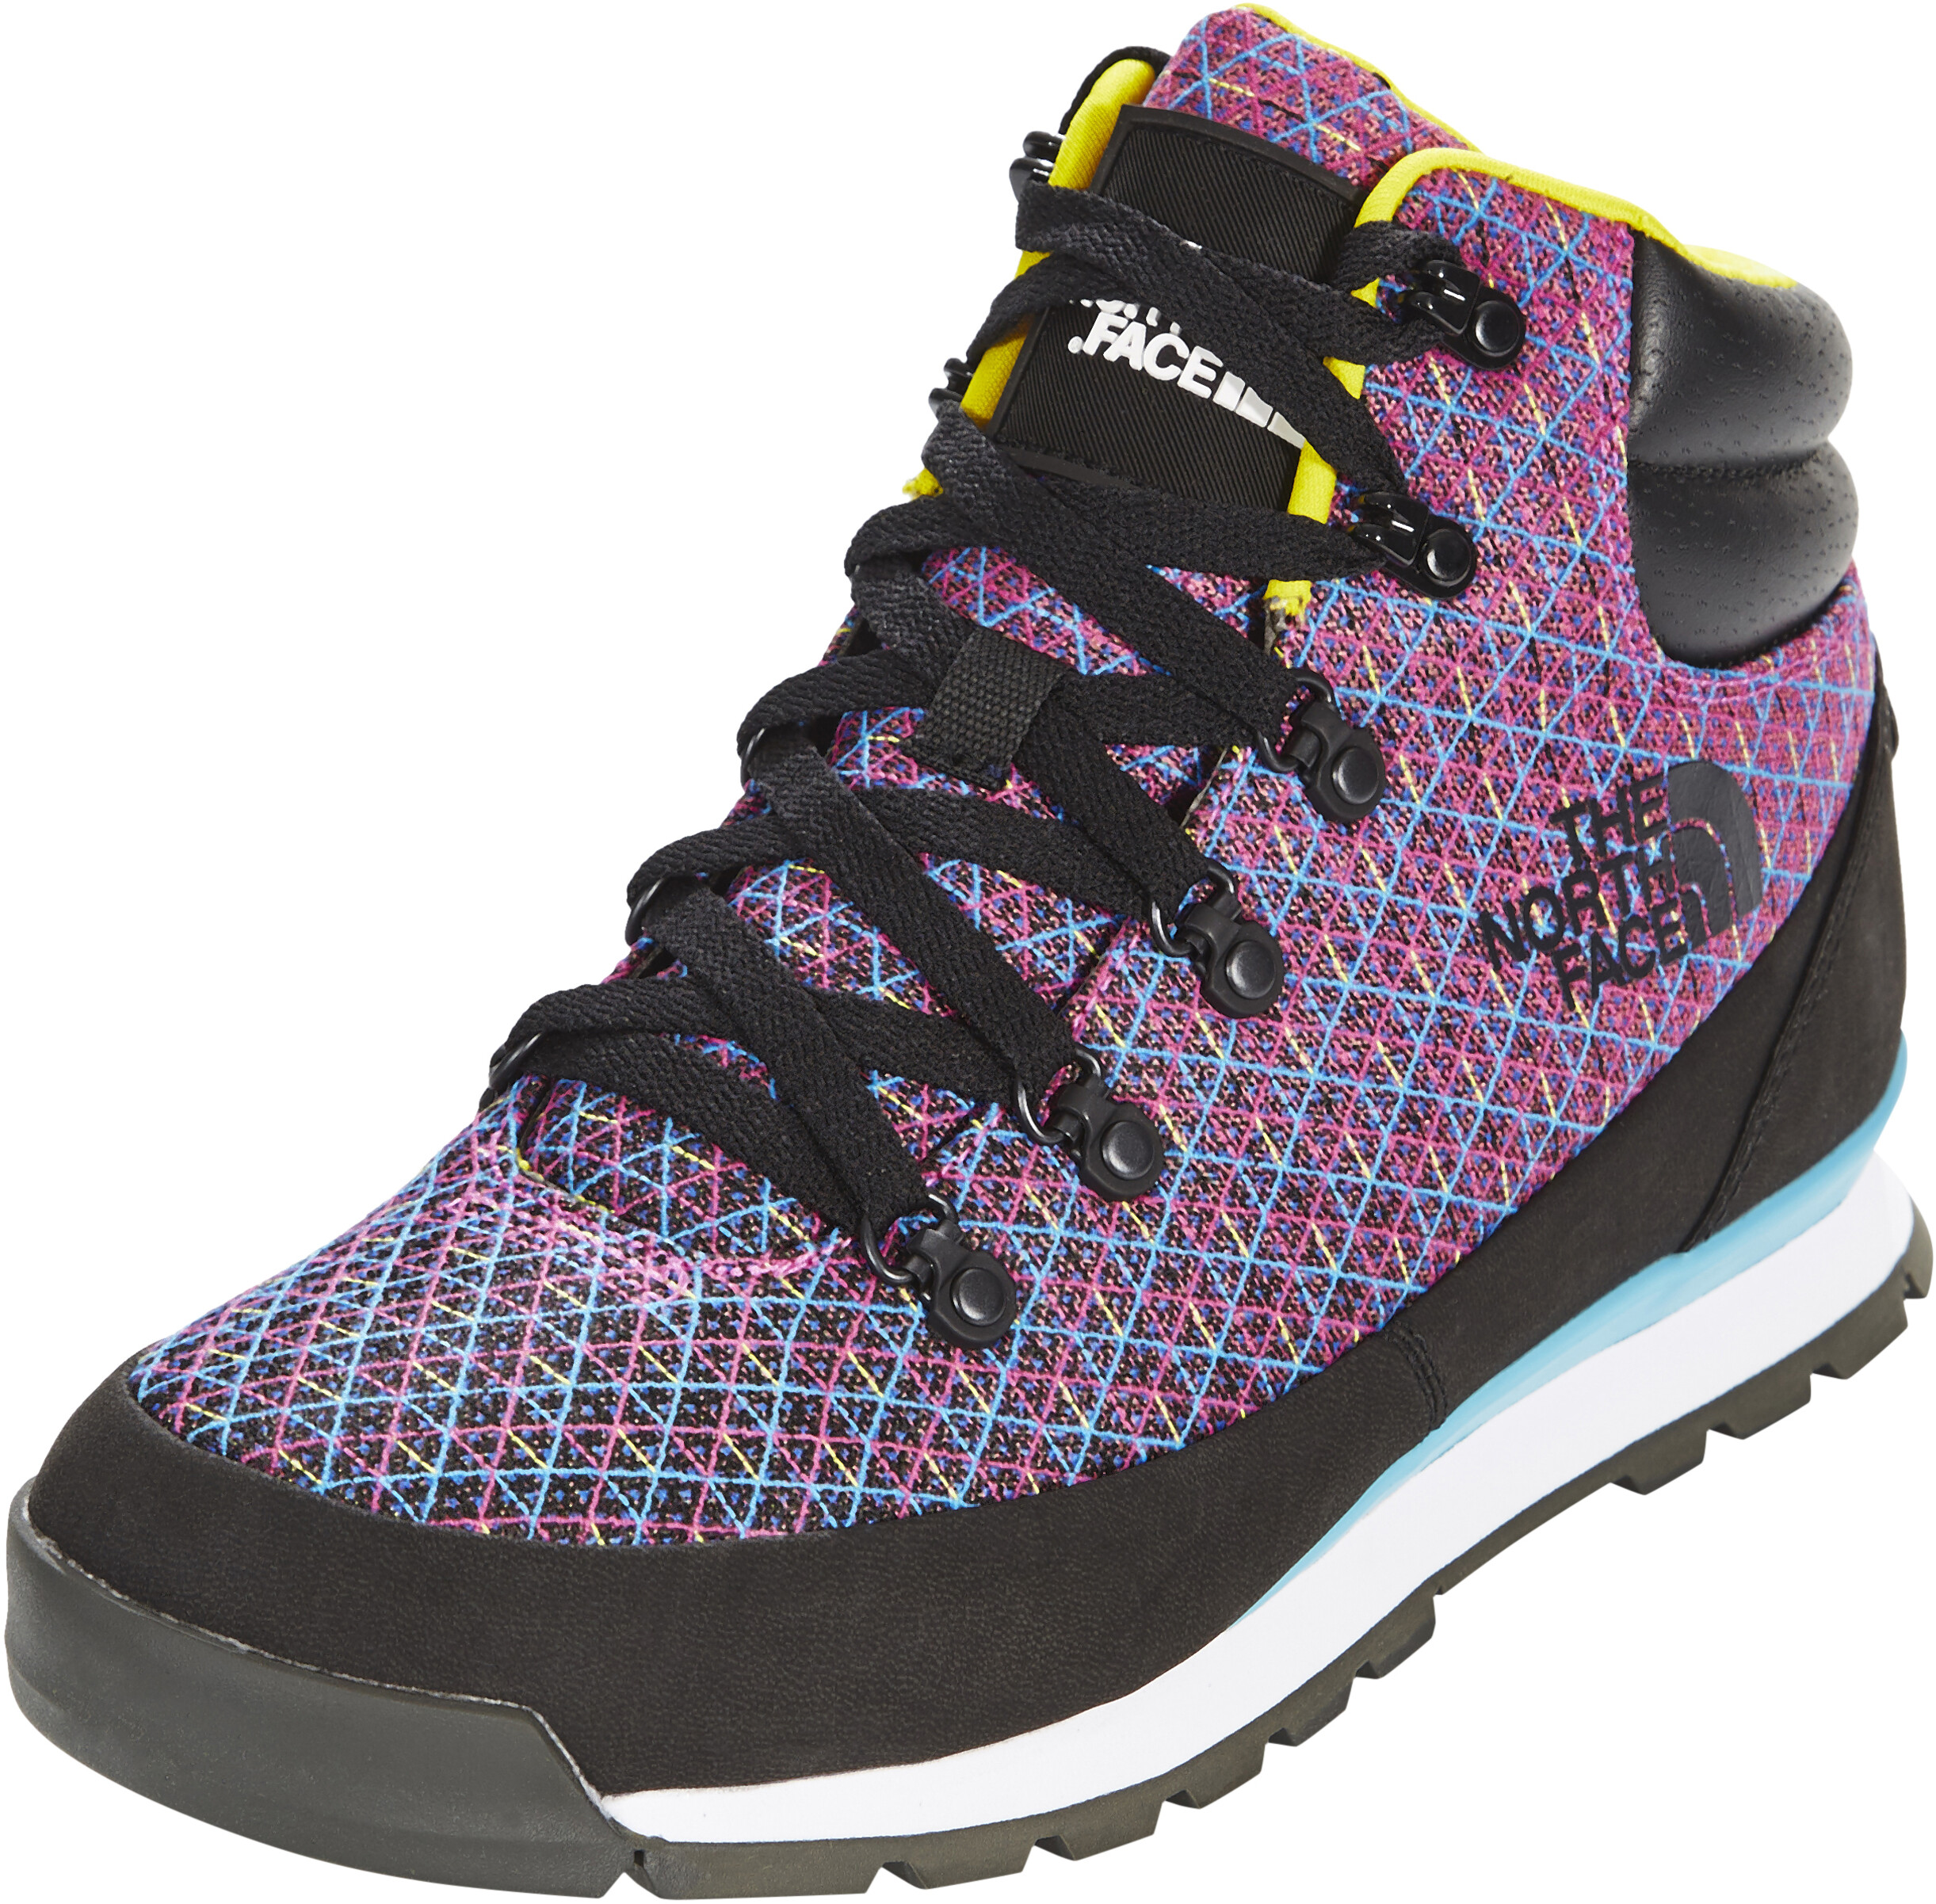 080876954 The North Face Back-To-Berkeley Redux CMYK Shoes Men tnf black/cyanblue